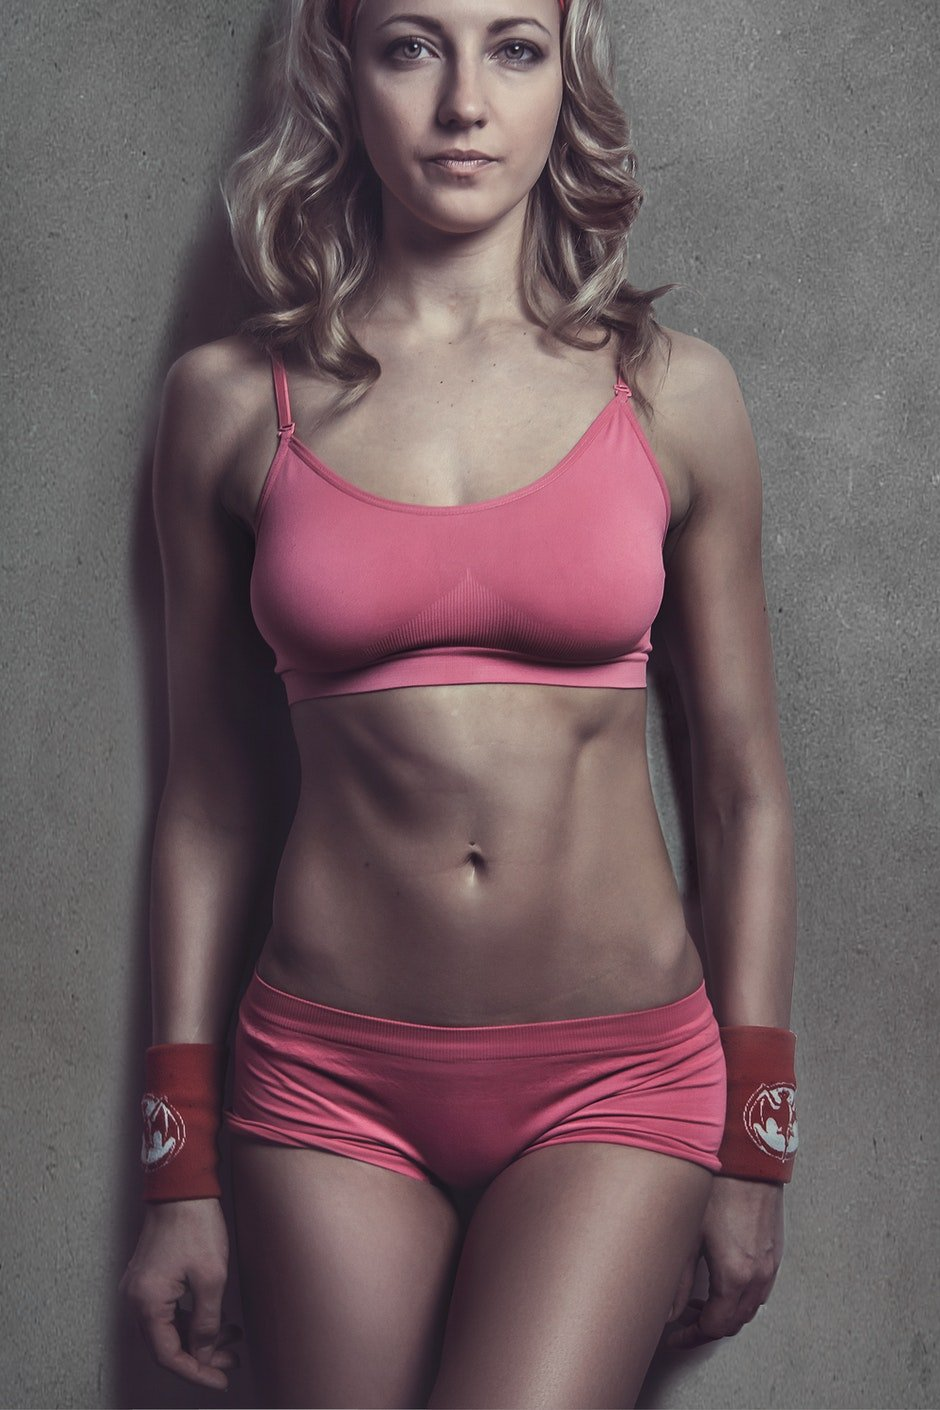 abs, adult, advertising